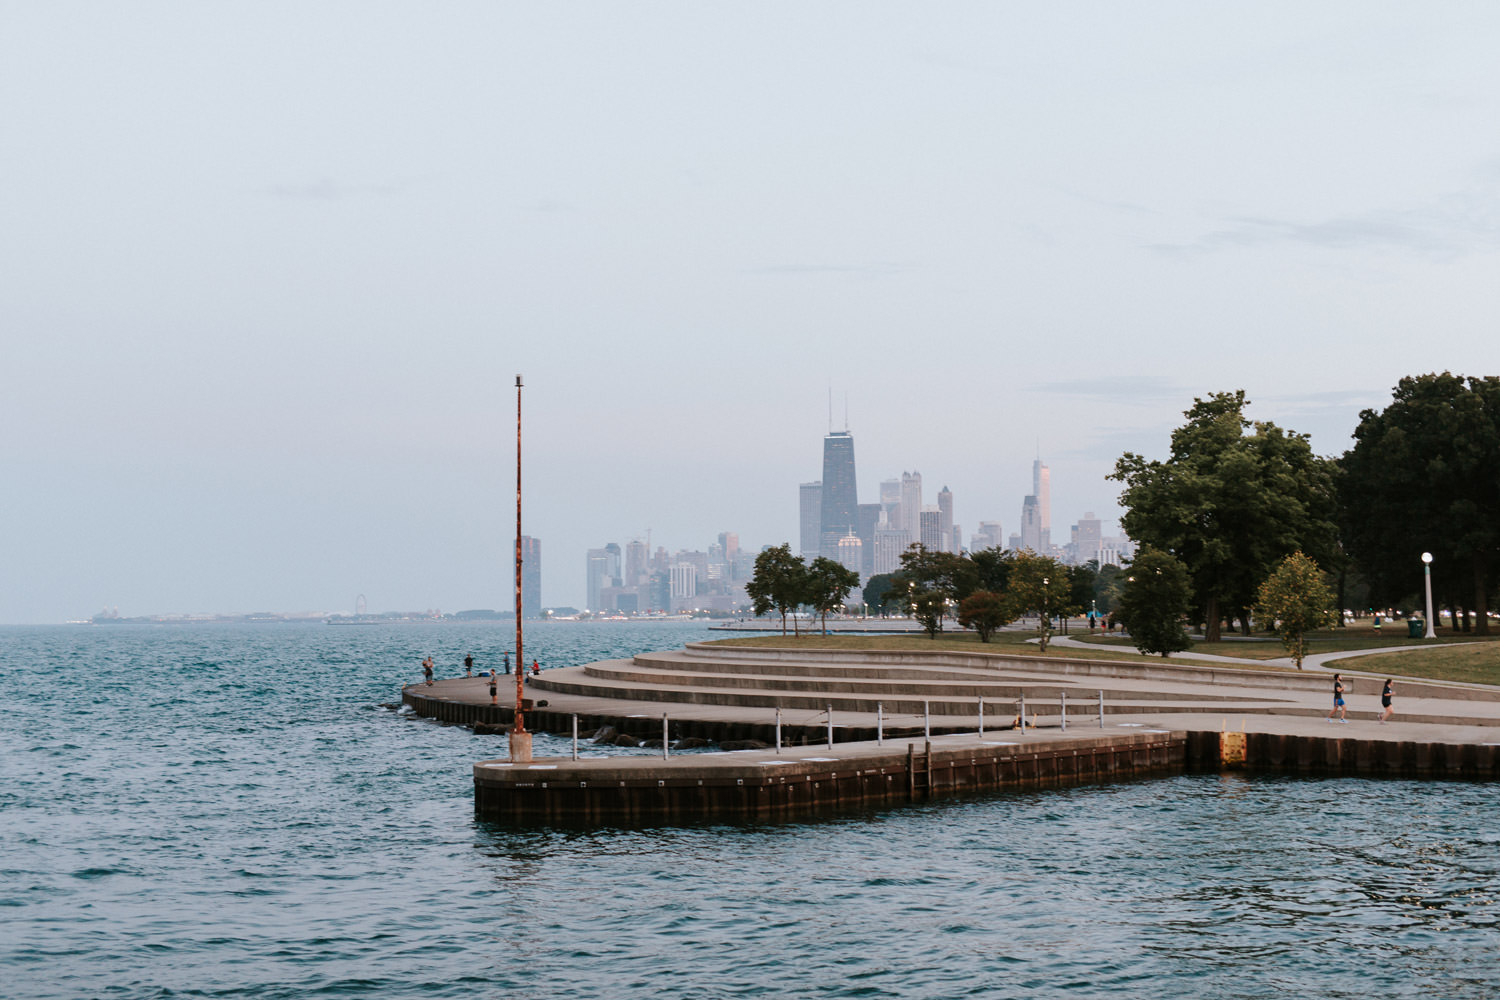 view of downtown chicago from Belmont pier